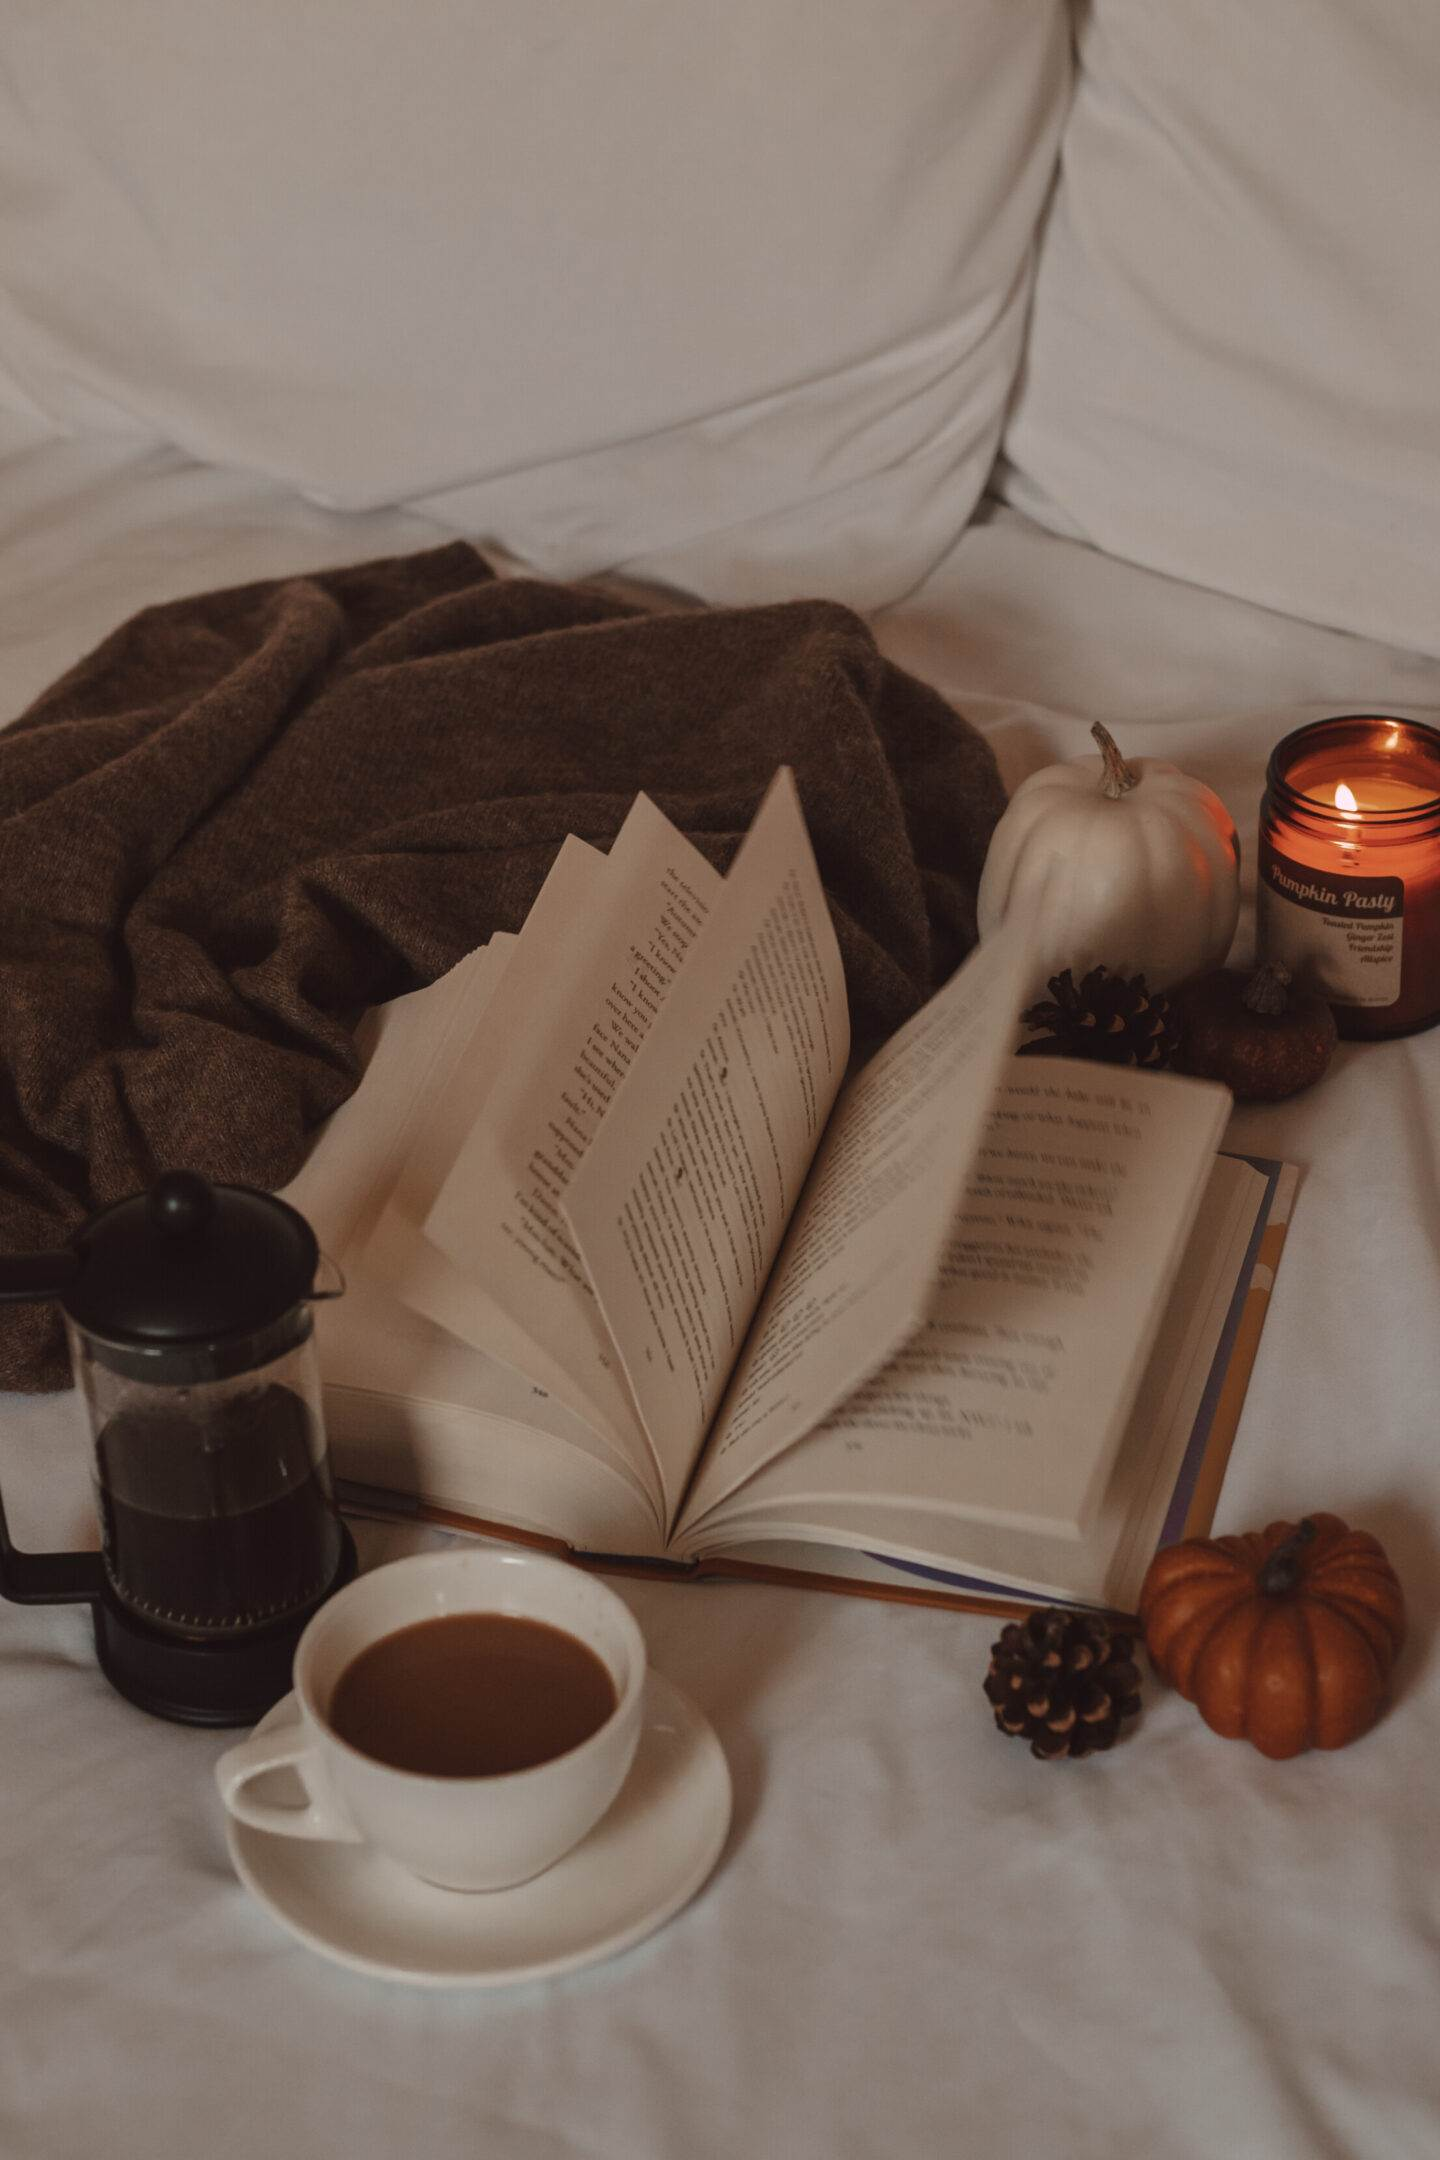 pages flipping in a book next to a french press and mug of coffee, mini pumpkins, and a candle